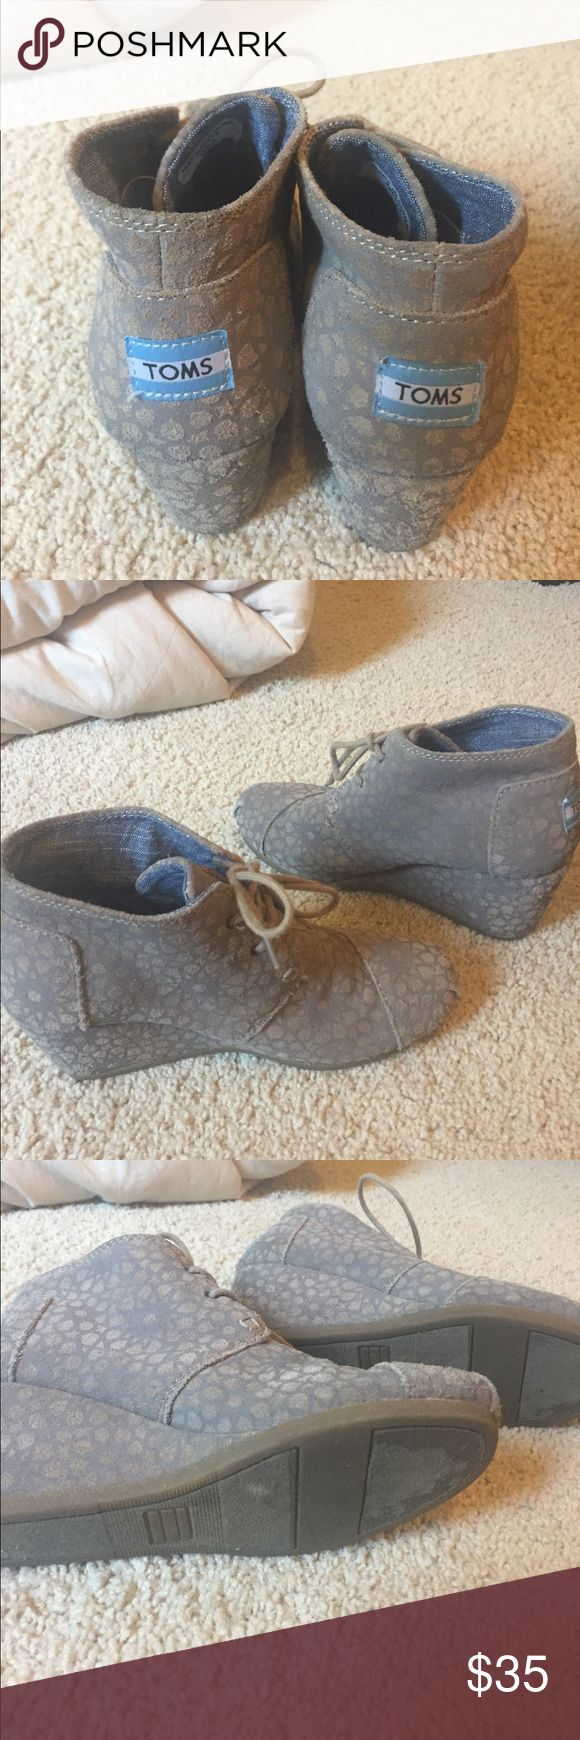 TOMS Desert Wedge Booties These are so comfy and versatile. Taupe and gray spotted design that is hard to find. Good condition. Also selling a pair in blue. Bundle for a discount! Toms Shoes Ankle Boots & Booties